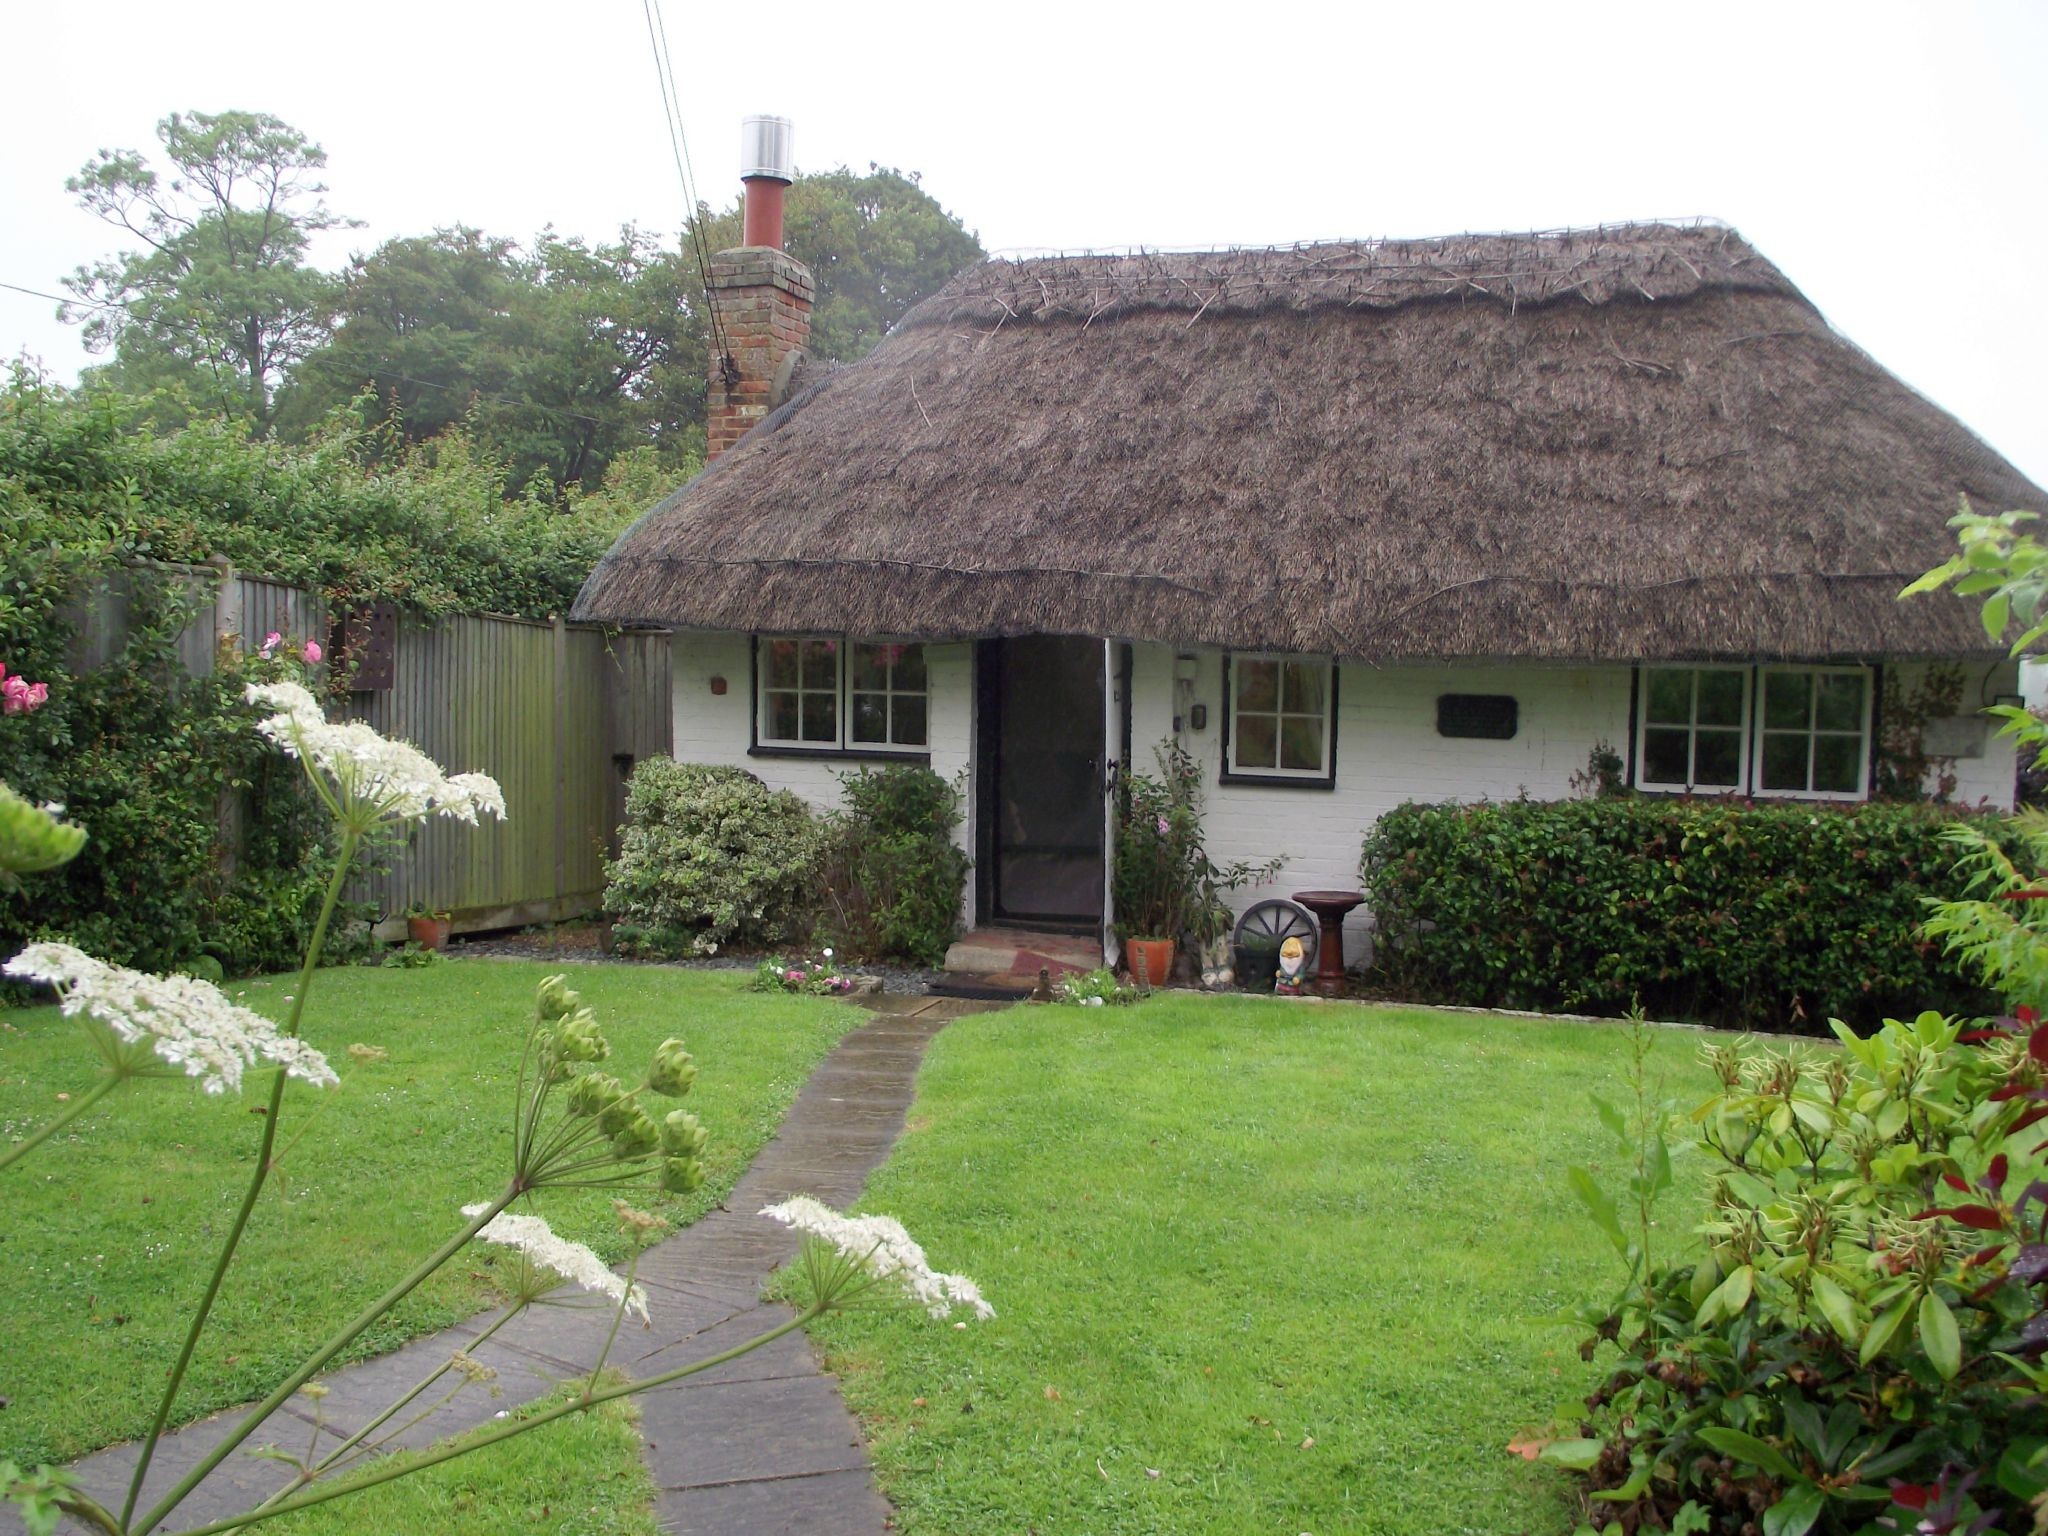 Le cottage de kenardington le cottage de gwladys - Deco style cottage anglais ...